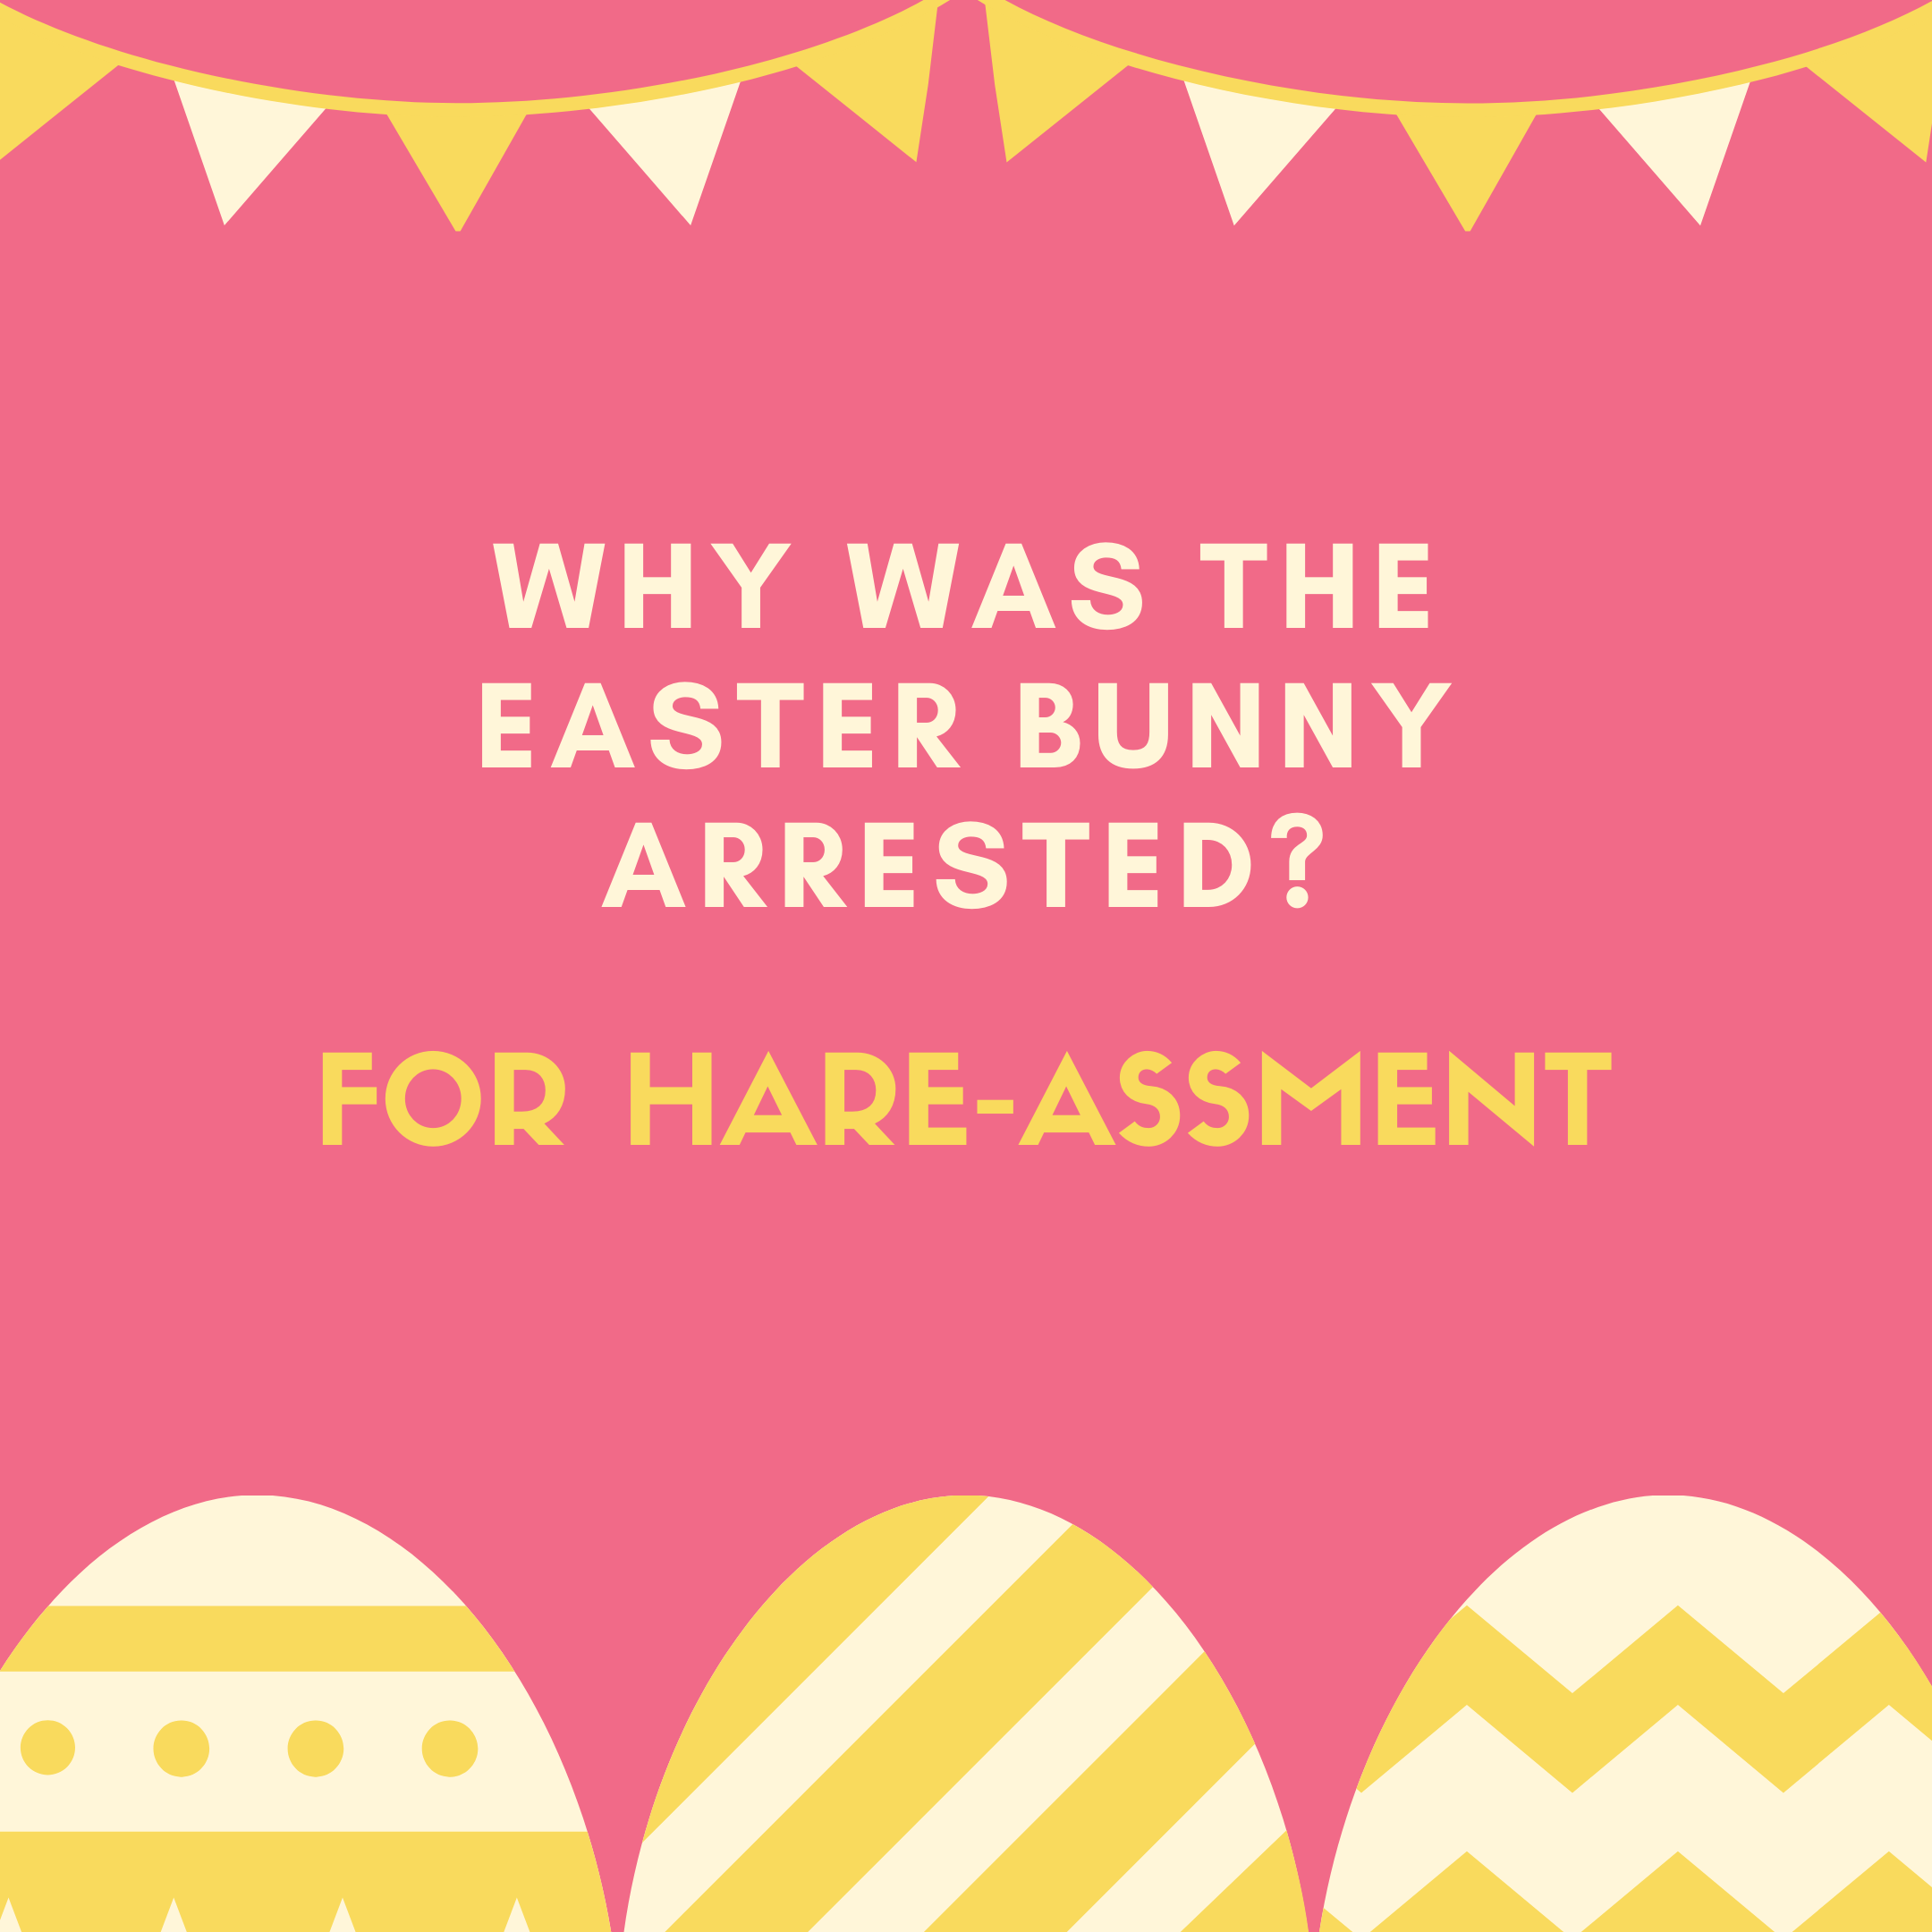 Why was the Easter Bunny arrested? For hare-assment